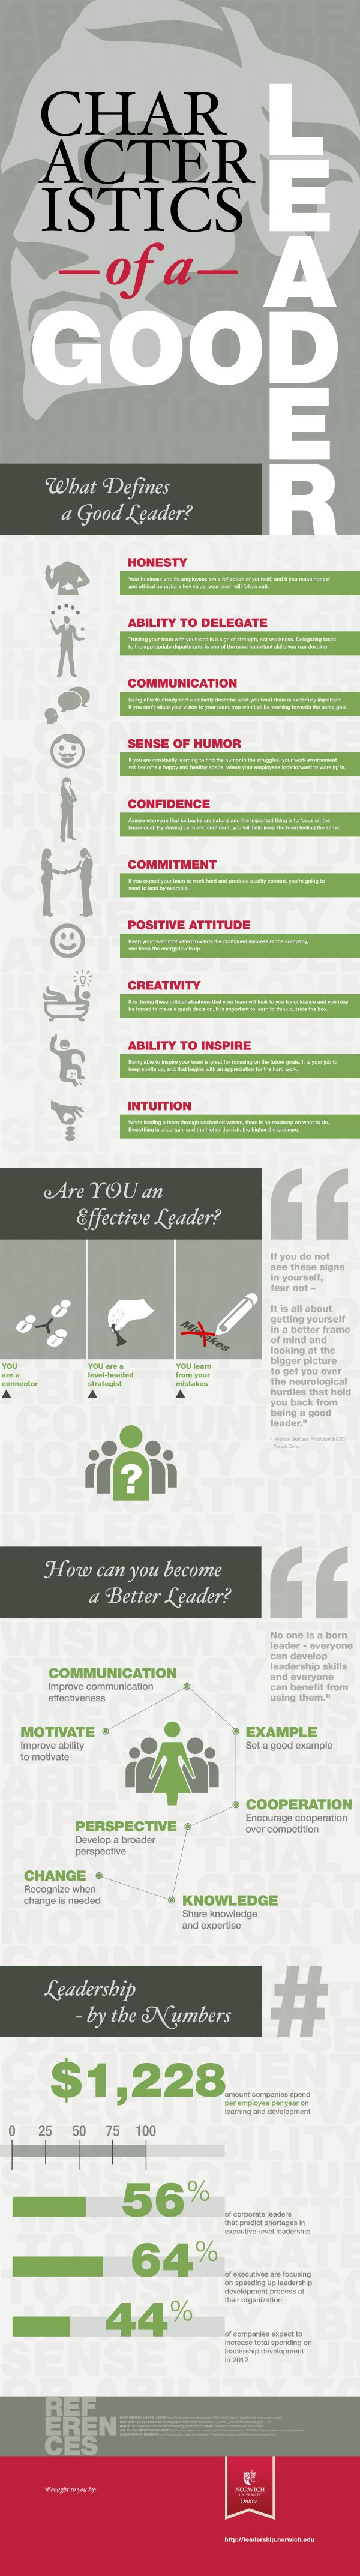 best images about employee management job characteristics of a good leader and how to cultivate them infographic